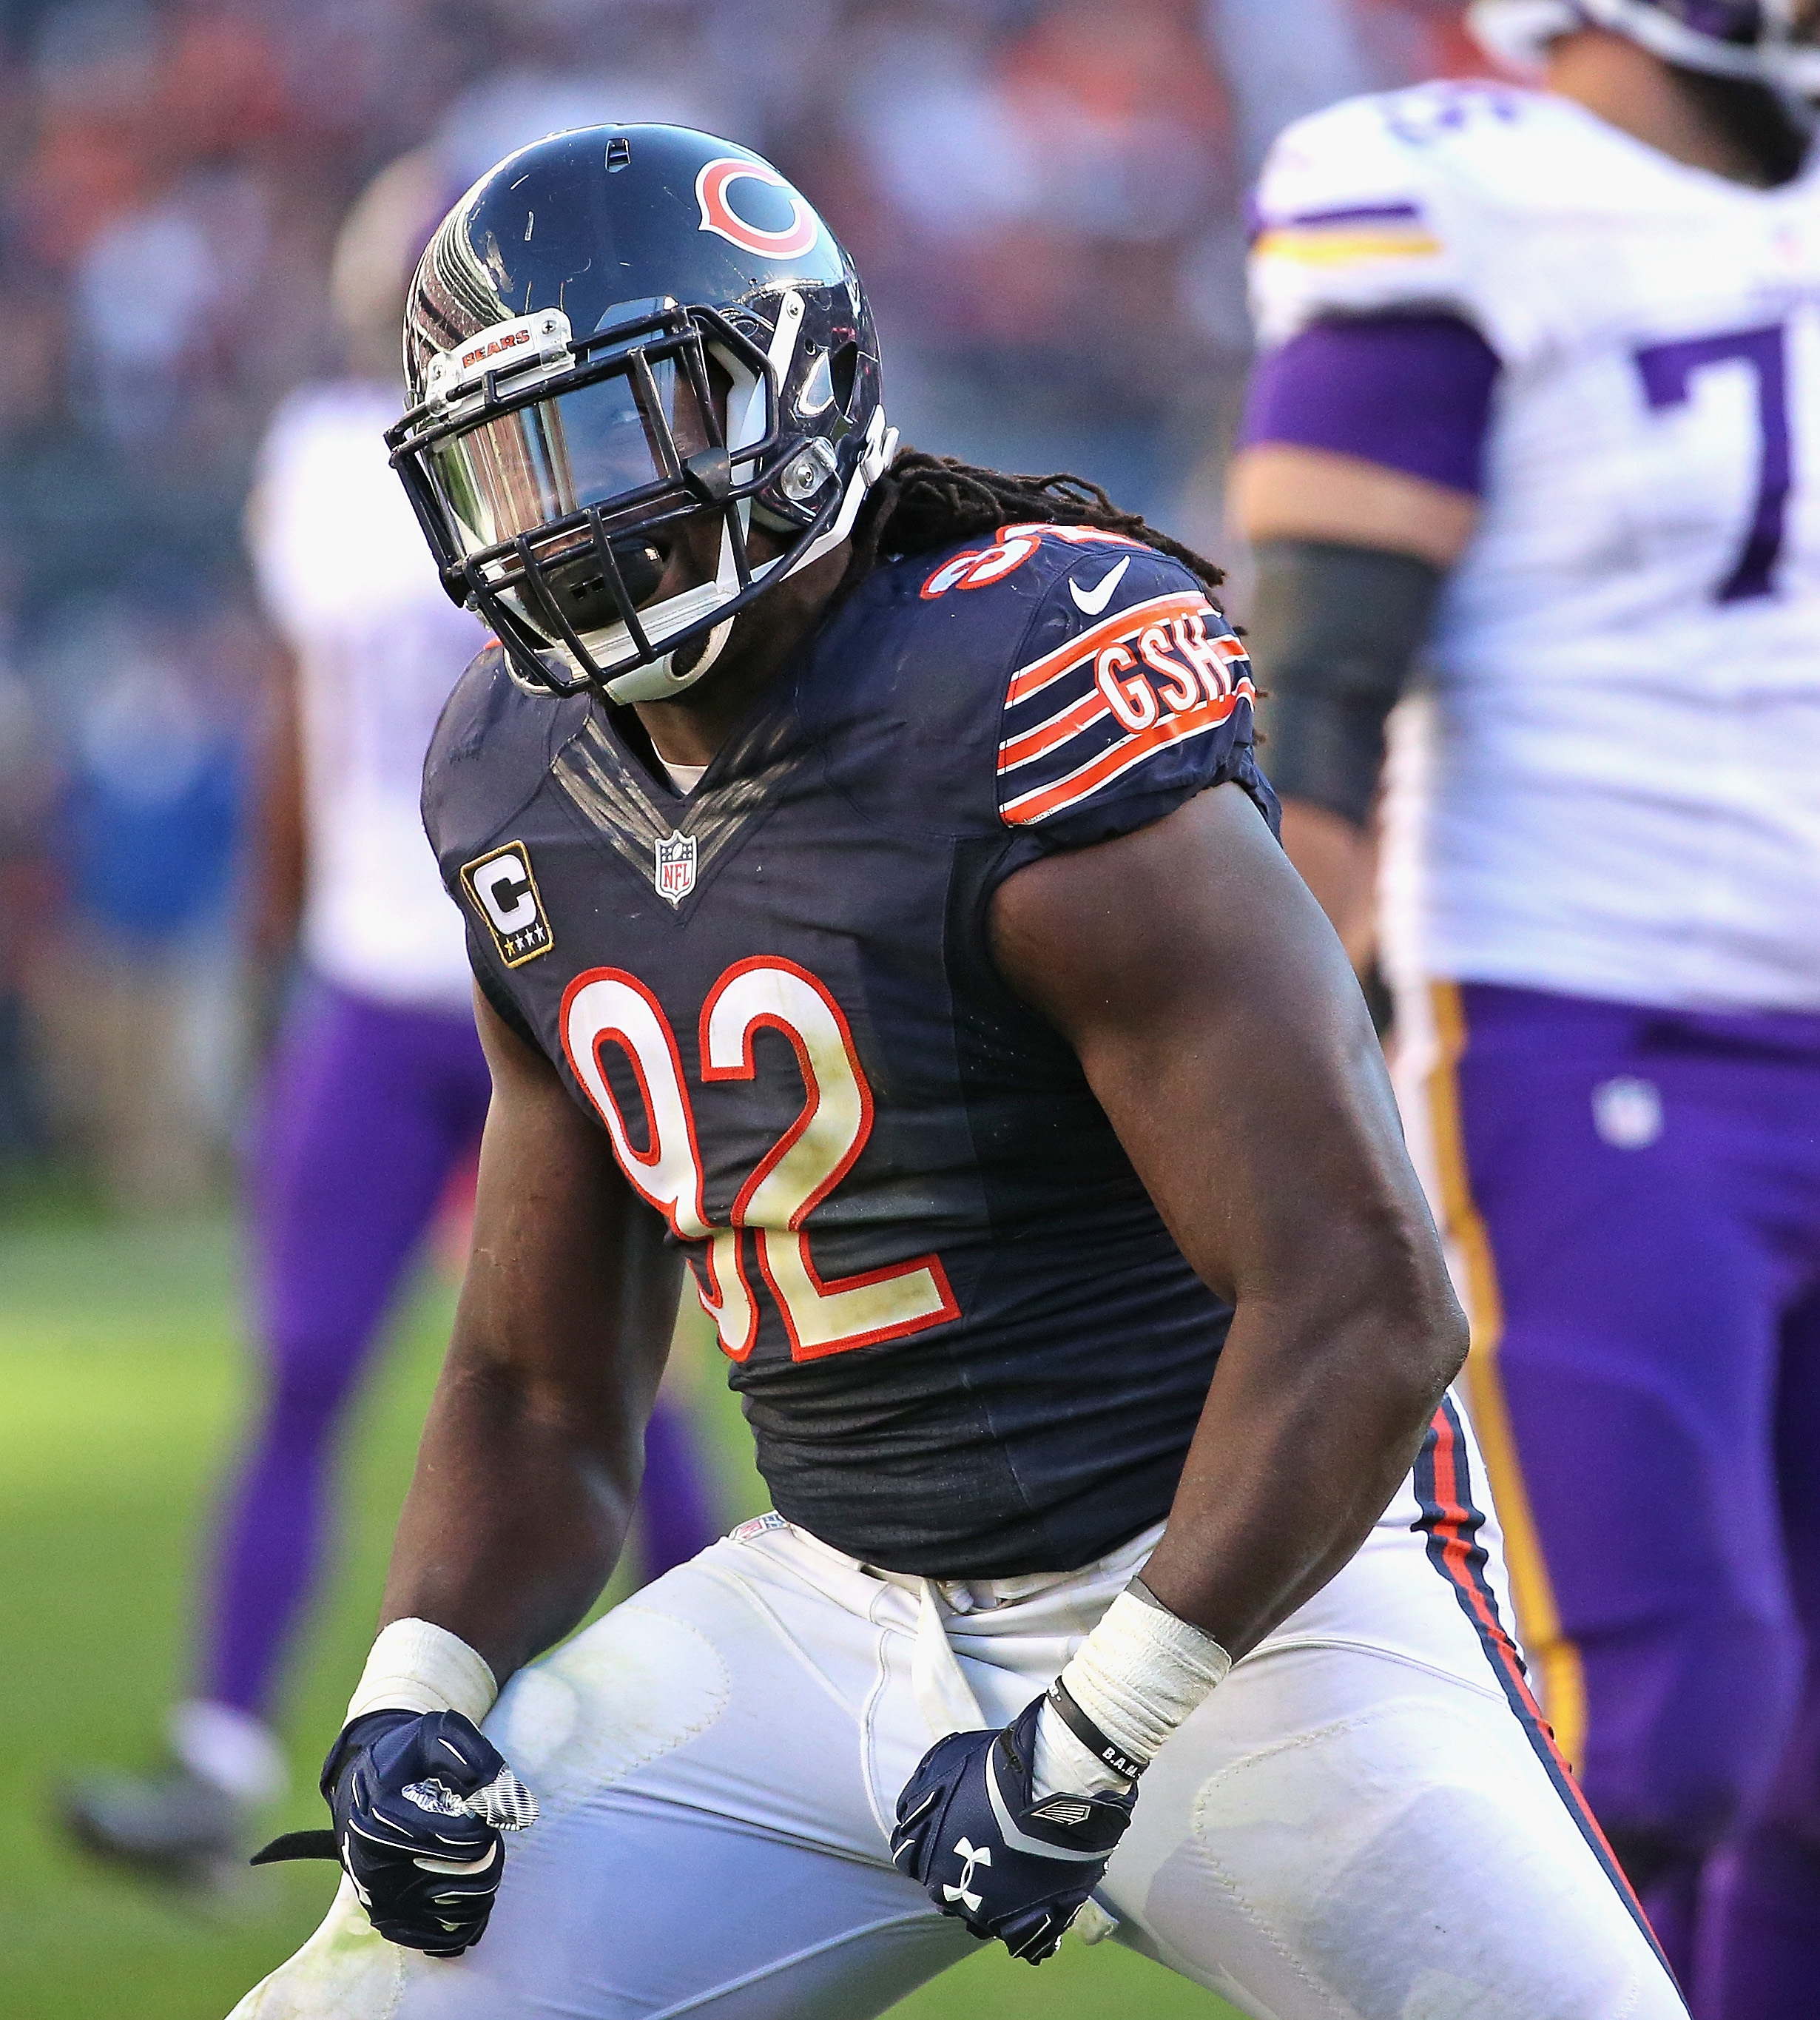 Pernell McPhee flexes his muscles after a huge play